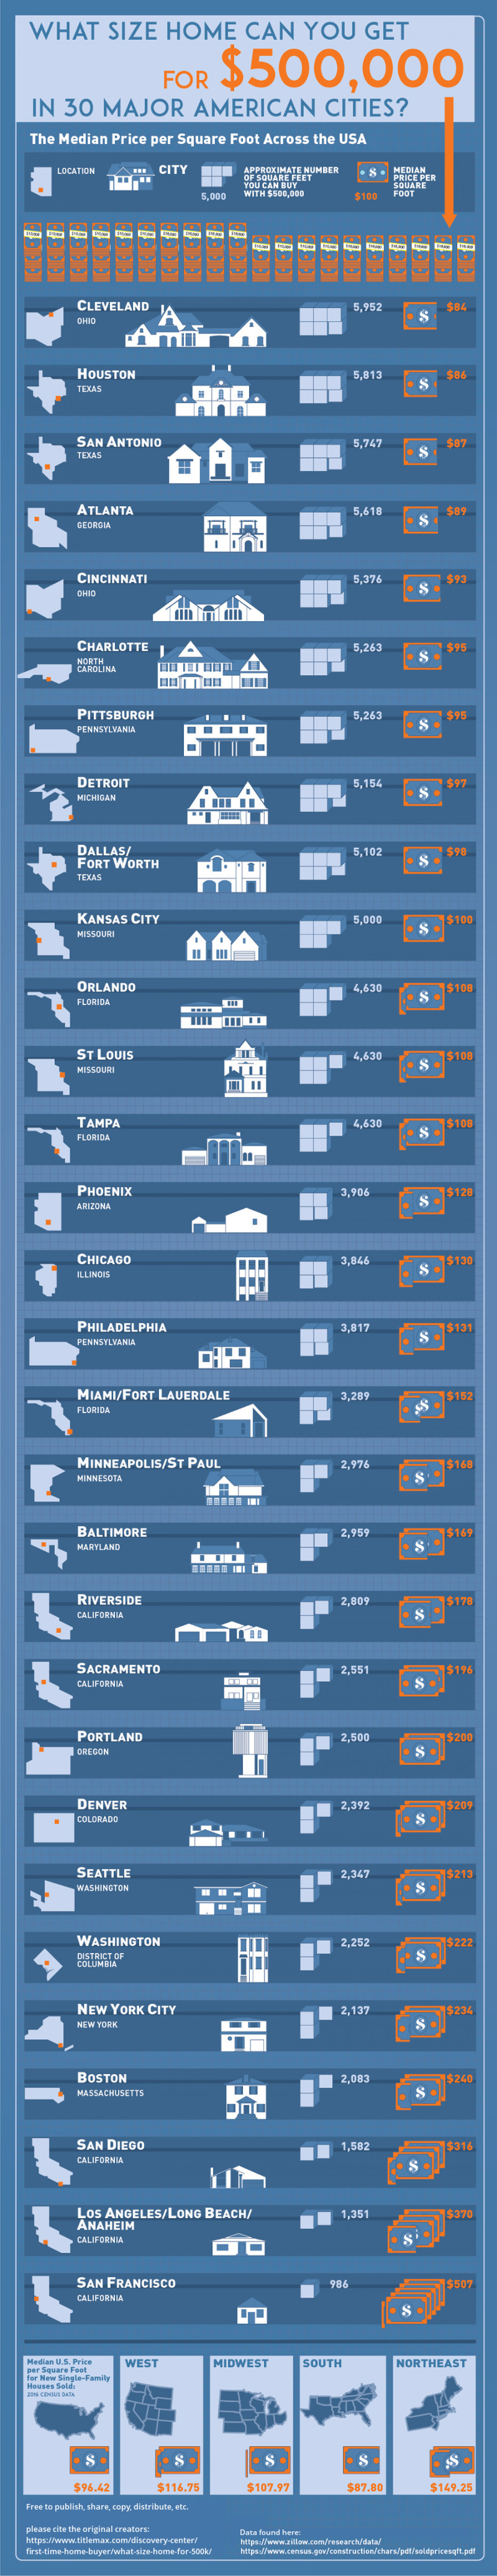 What size home can you get for $500,000 in 30 Major American Cities?  Infographic